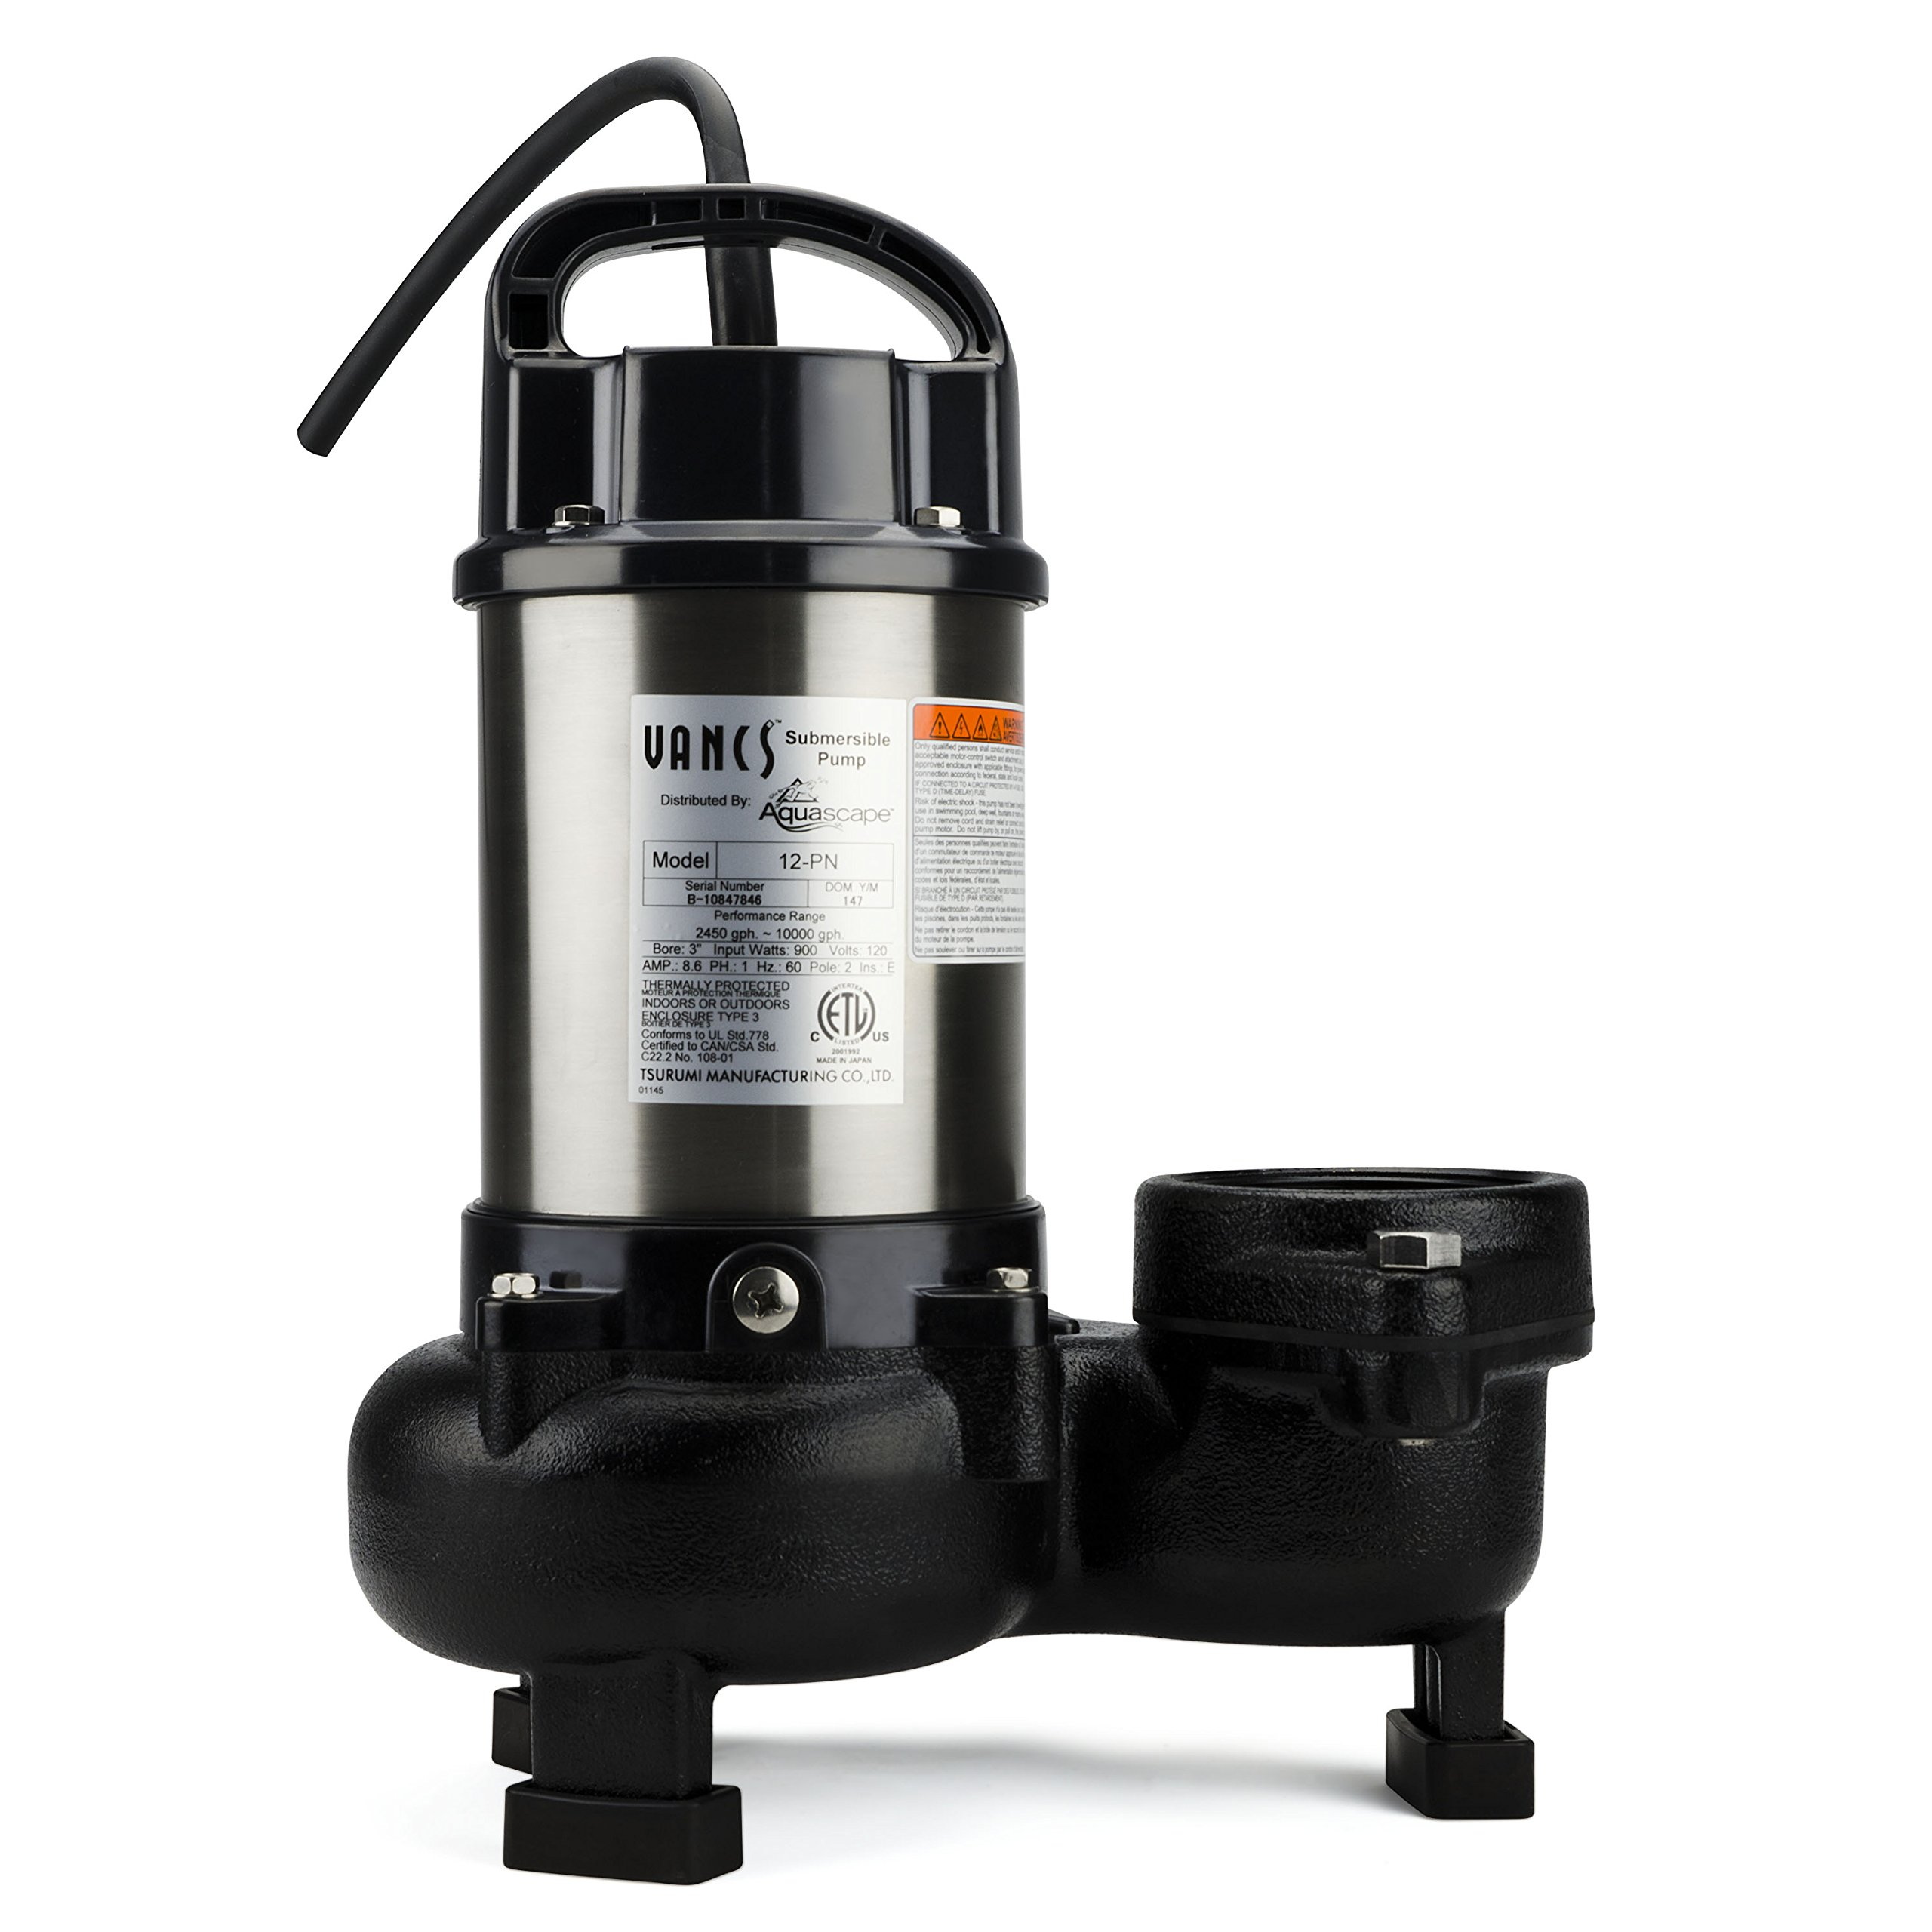 Aquascape 30391 Tsurumi 12PN Submersible Pump for Ponds, Skimmer Filters, and Pondless Waterfalls, 10,000 GPH by Tsurumi (Image #1)